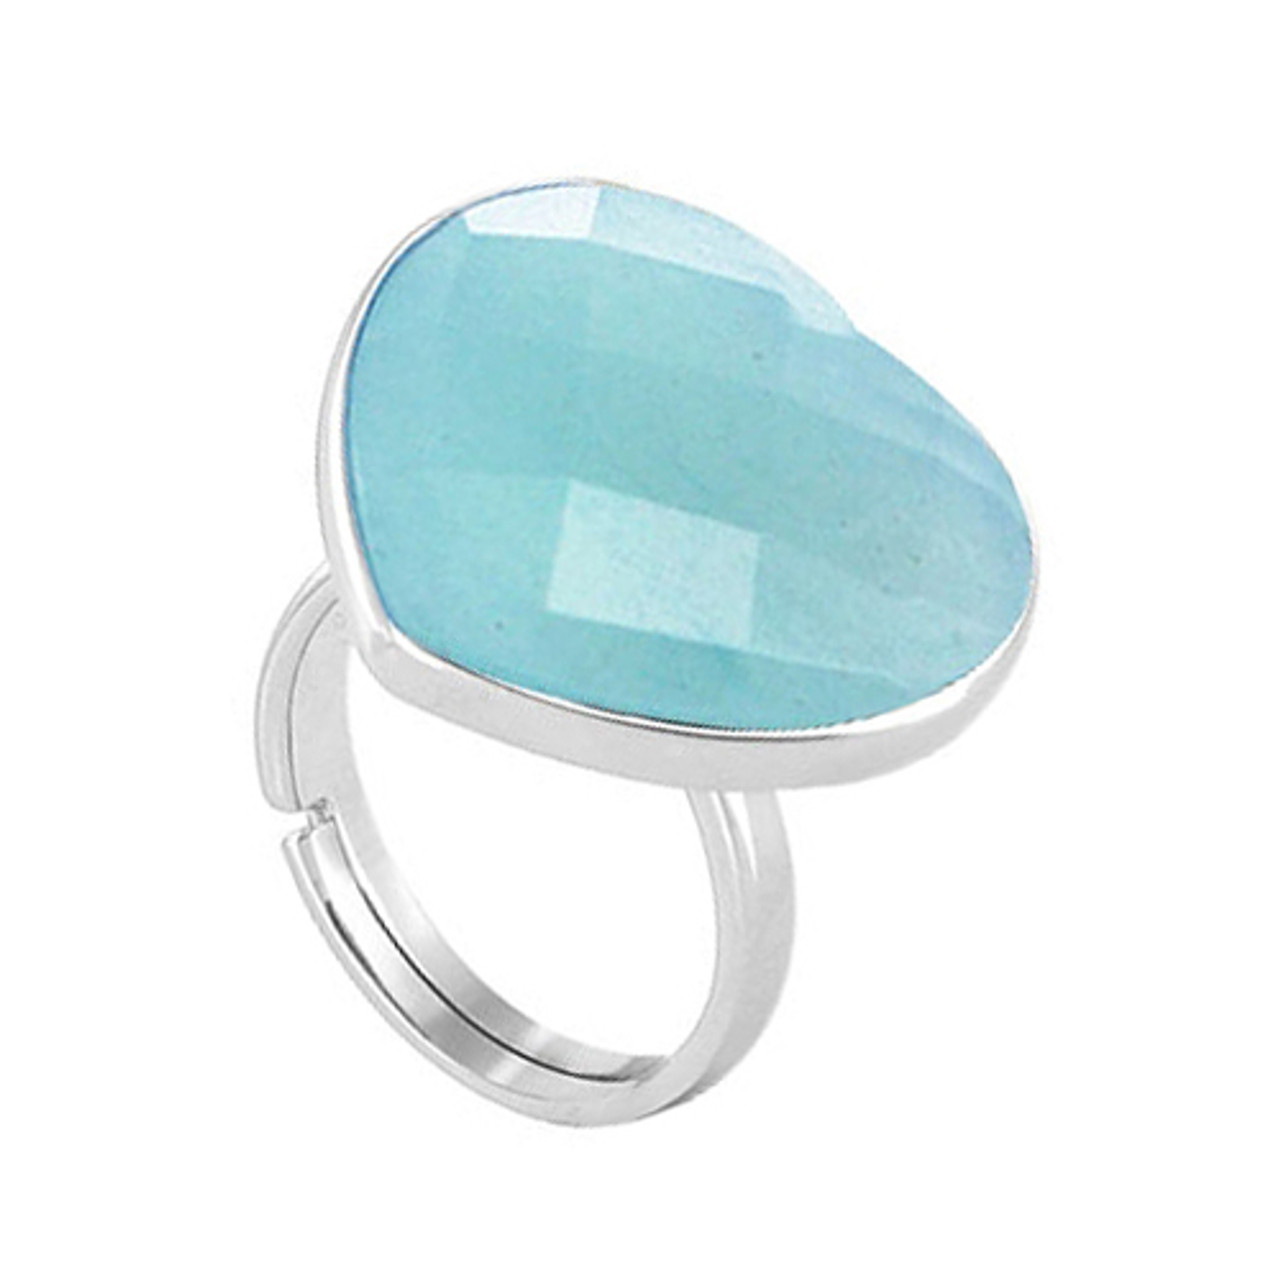 Arizona Faceted Heart 3mm Ring Size 8 to 11 Adjustable